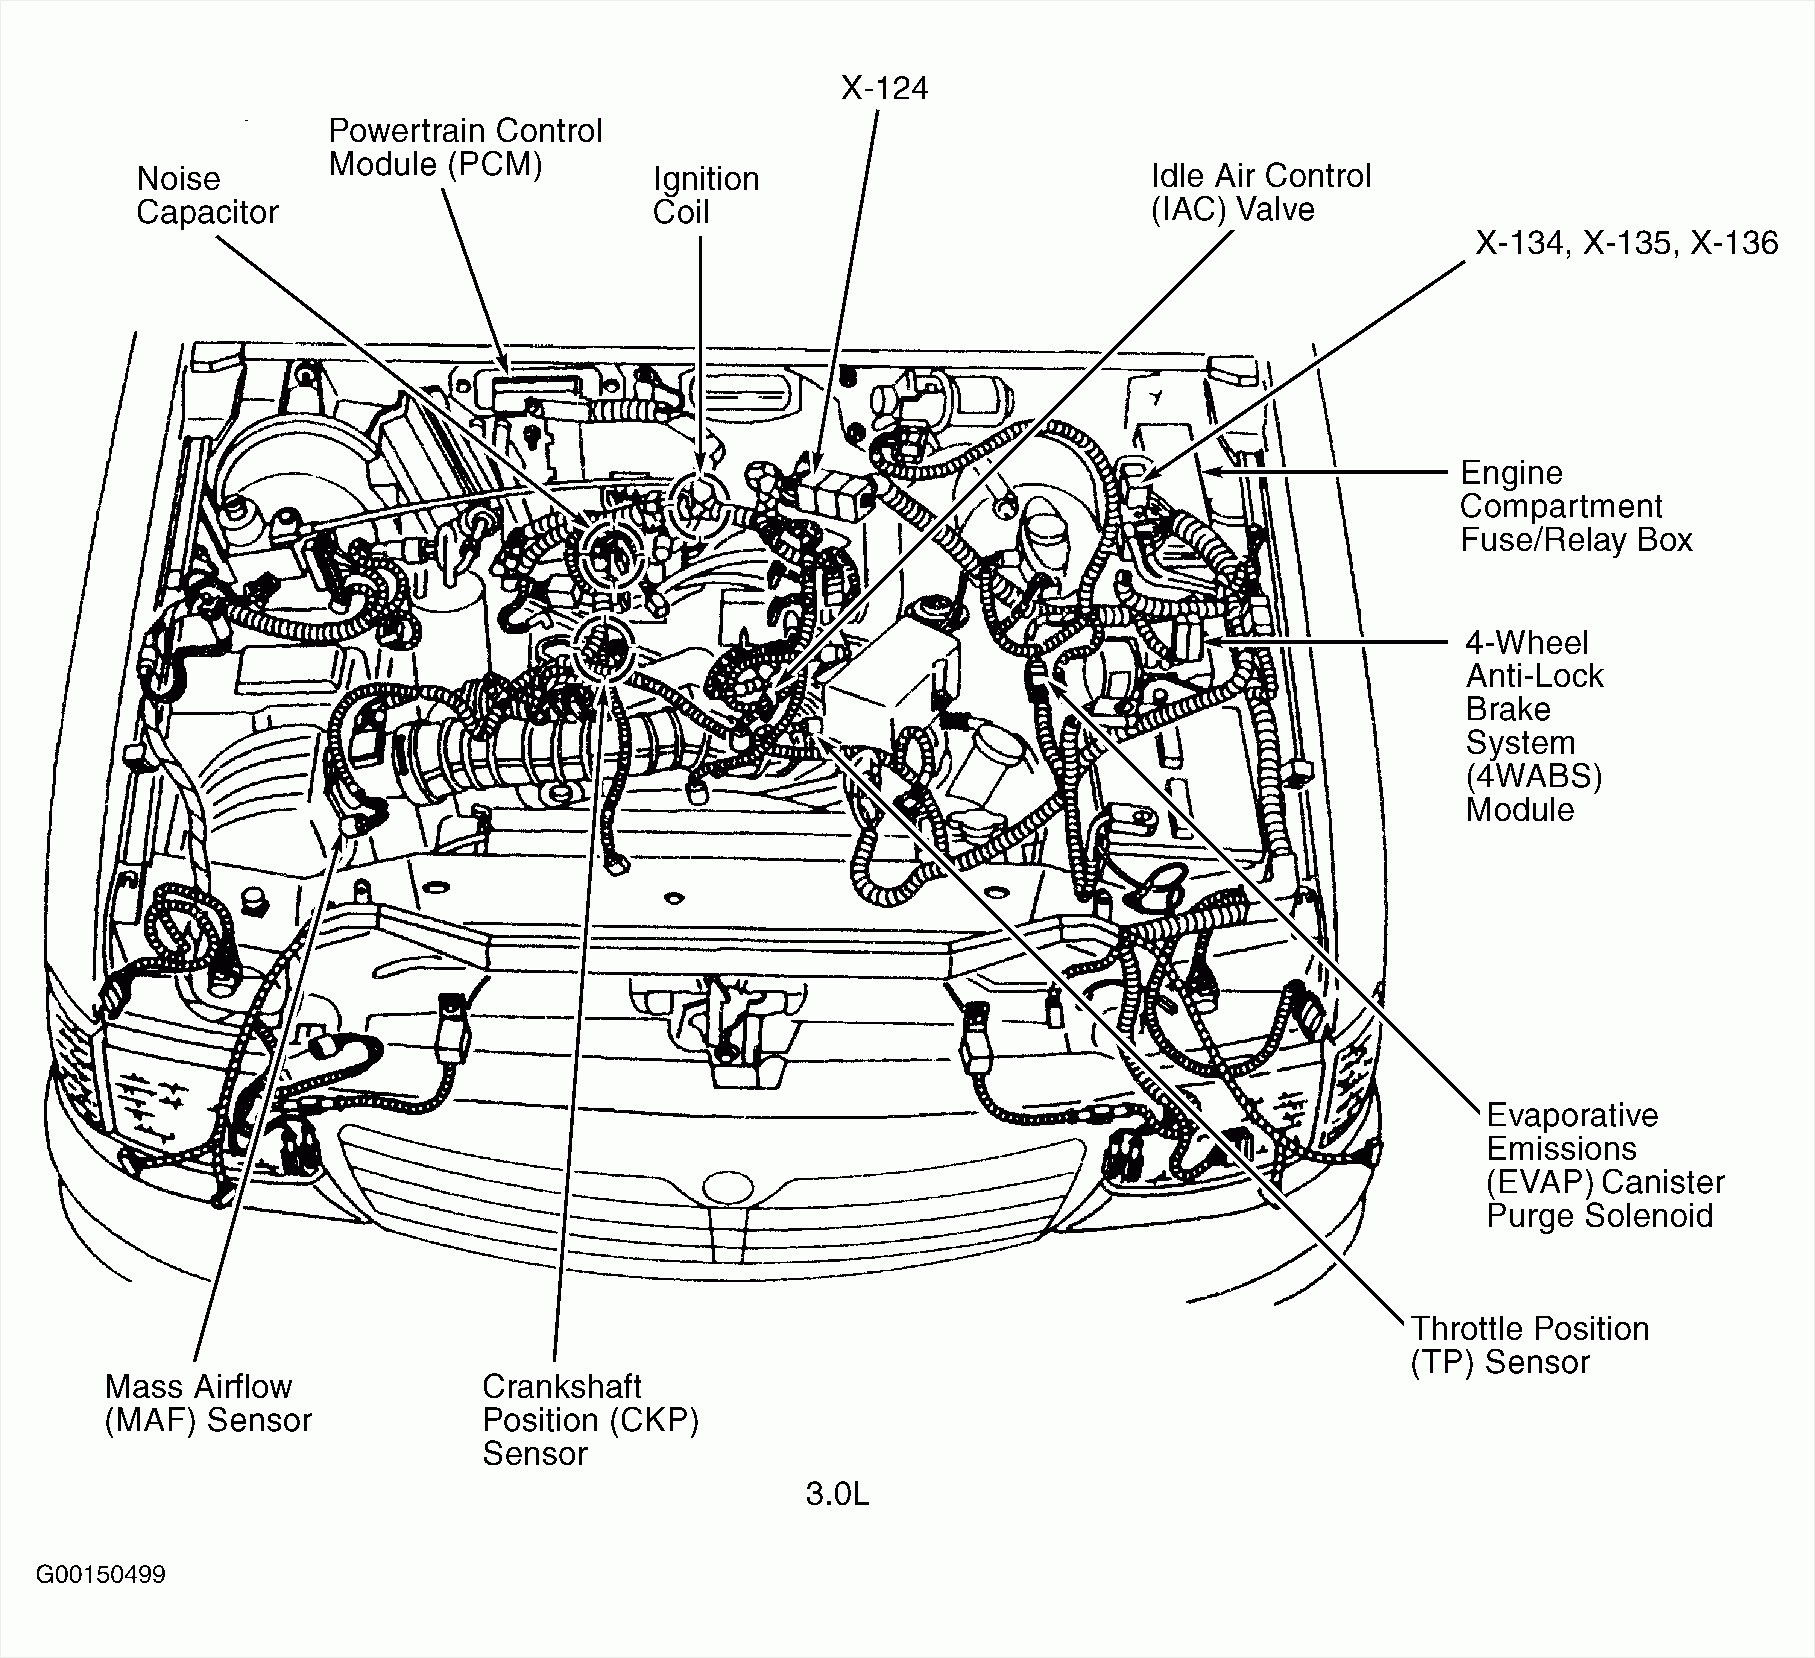 kf dohc v6 engine diagram trusted wiring diagrams u2022 rh radkan co 2002  saturn vue 3.0 engine diagram 2002 saturn vue 3.0 engine diagram